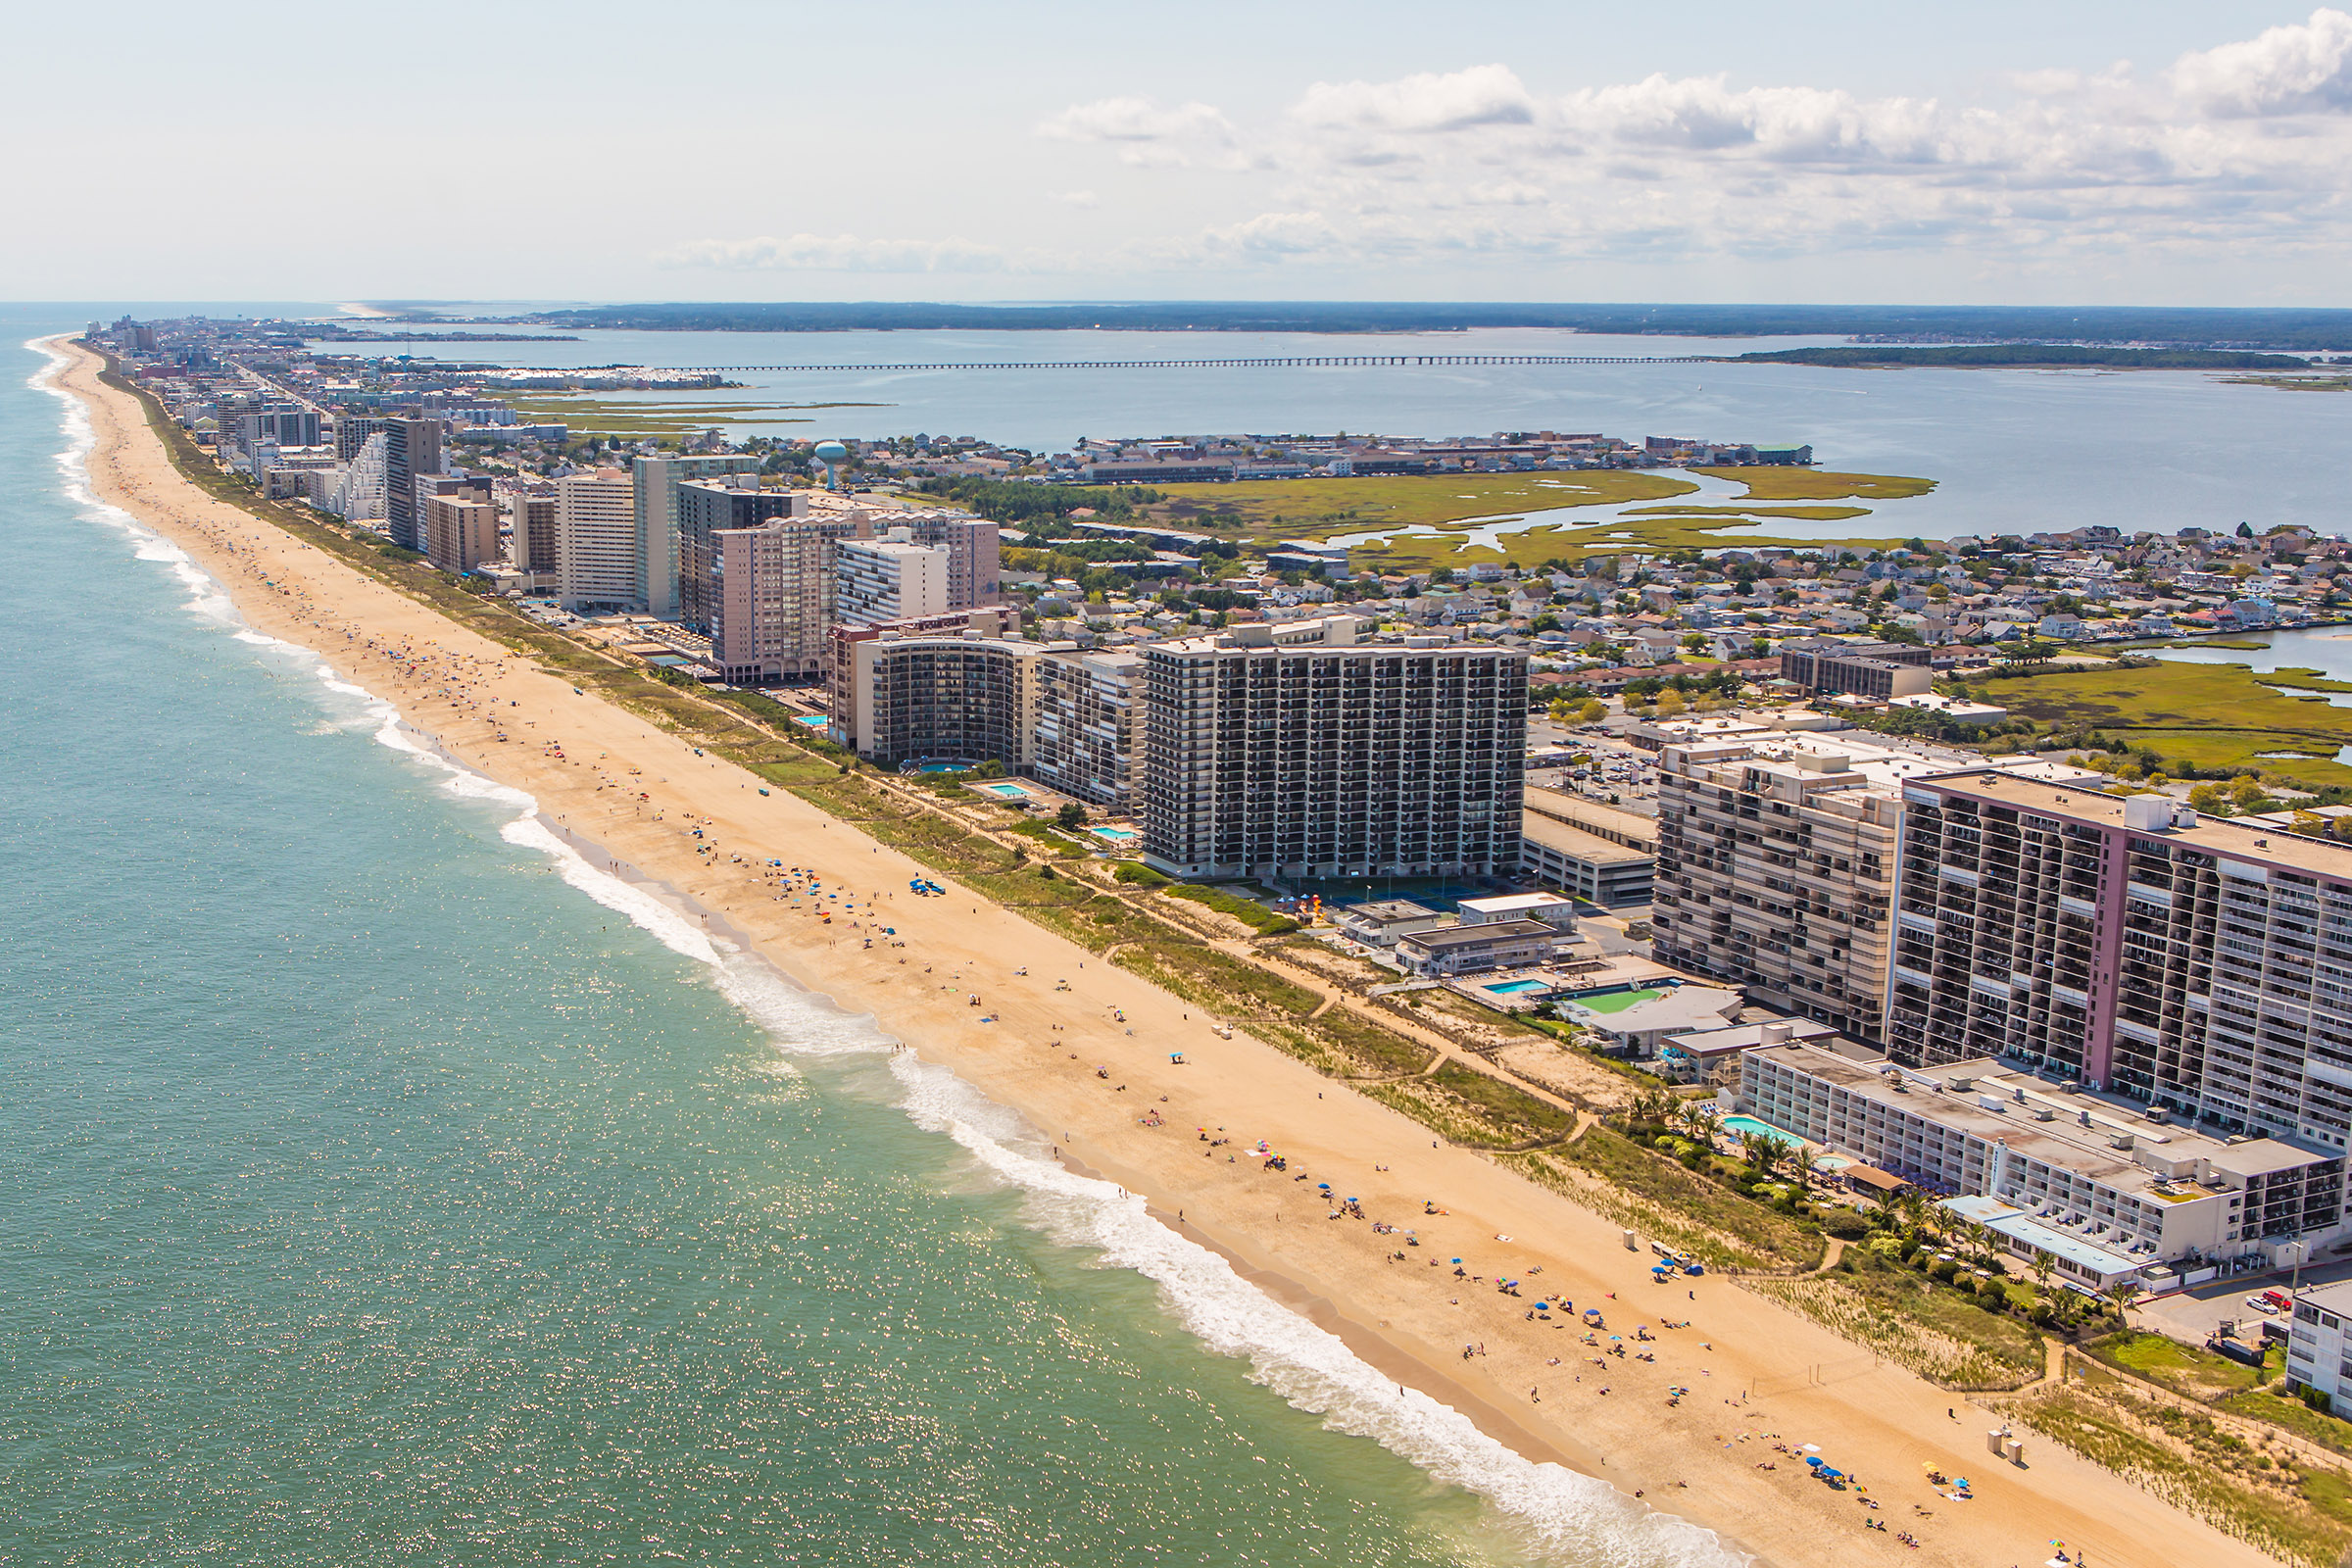 Ocean City Investigating What Injured Girl In Ocean; Statement: 'Marine Life Has Not Been Ruled Out'